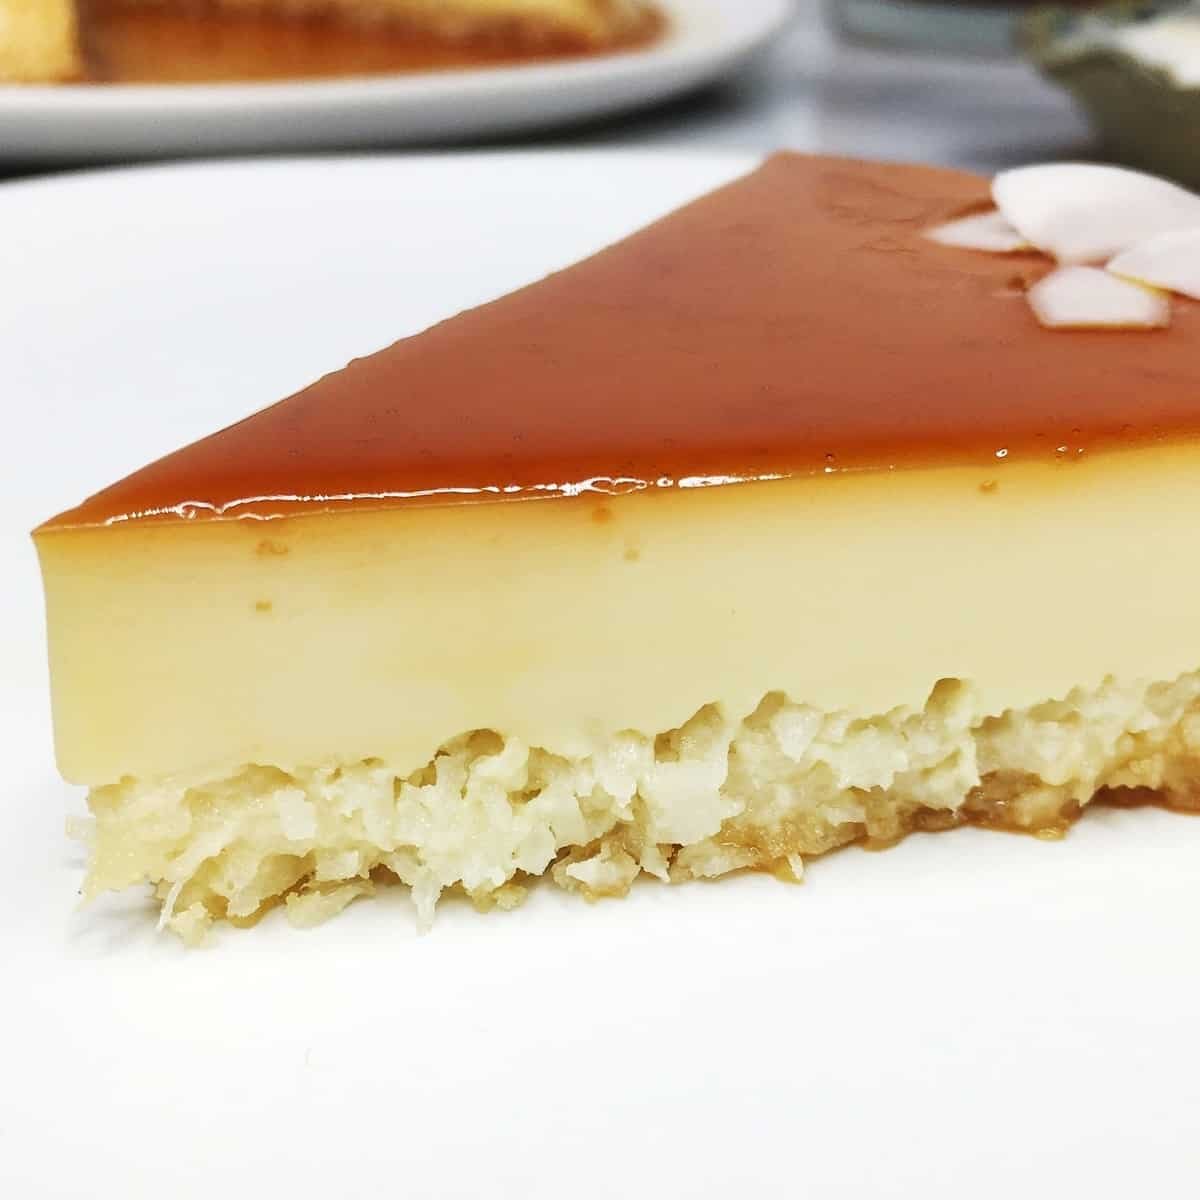 A slice of coconut flan with a plate in the background: Close up